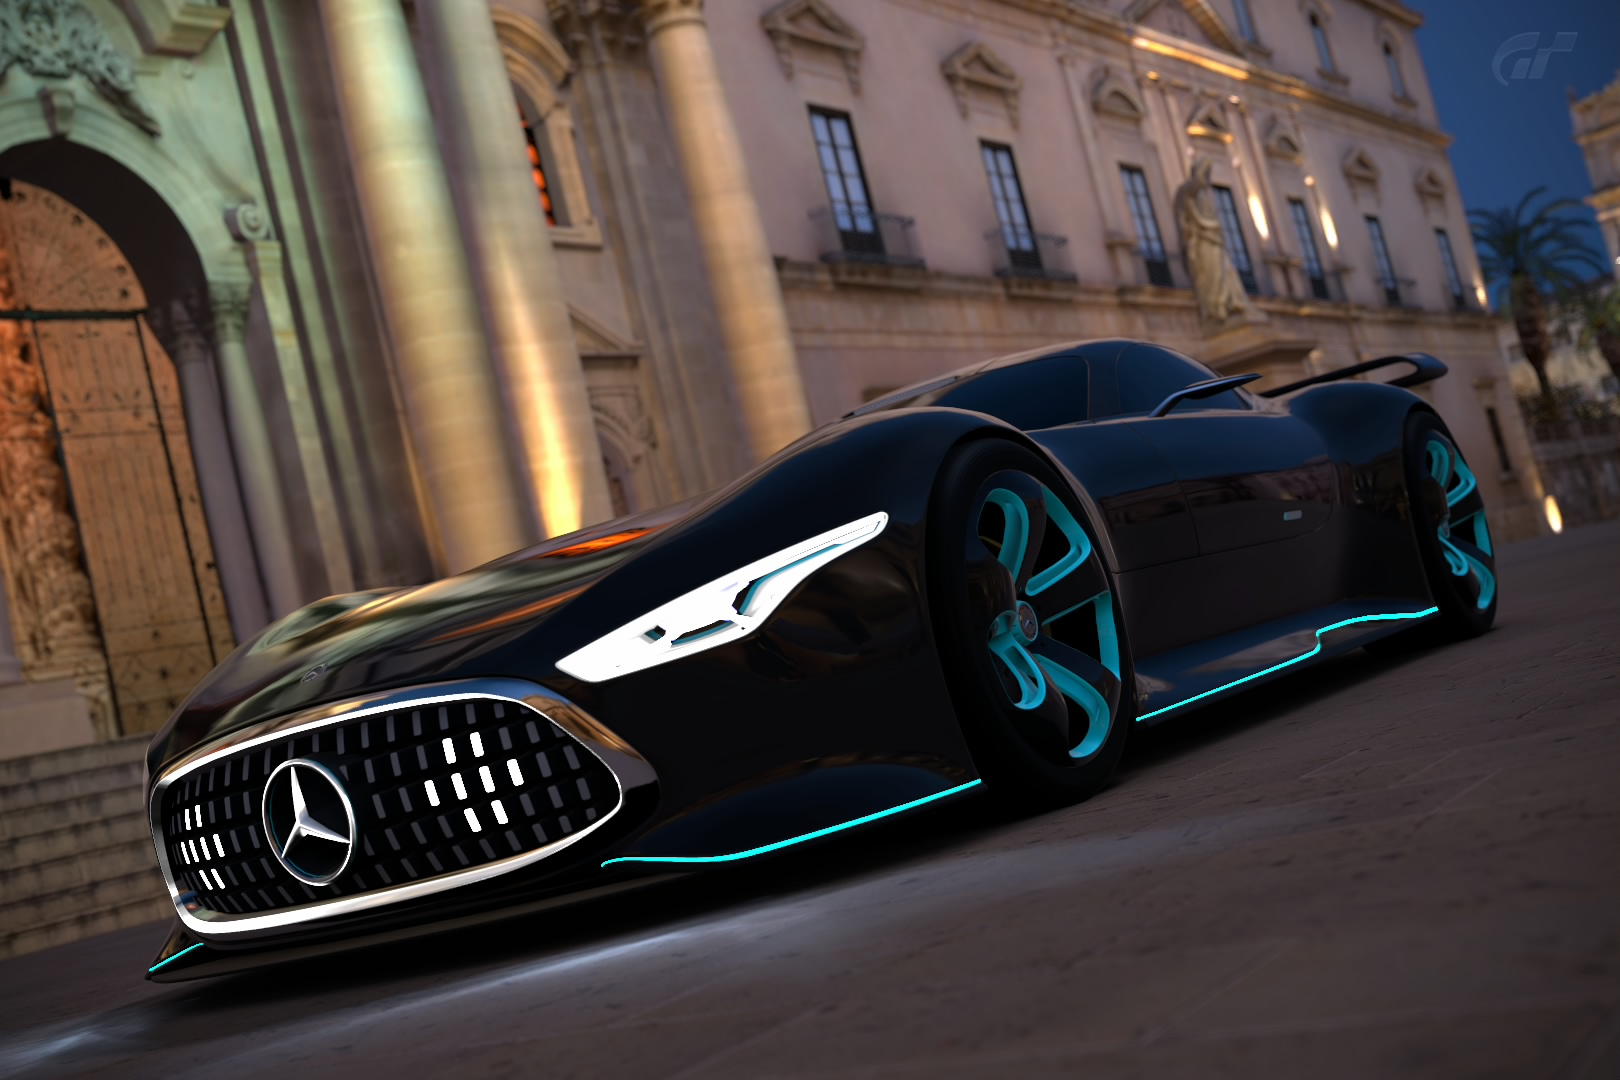 Mercedes benz amg vision gt racing series by llkll64 on for Mercedes benz amg vision gran turismo